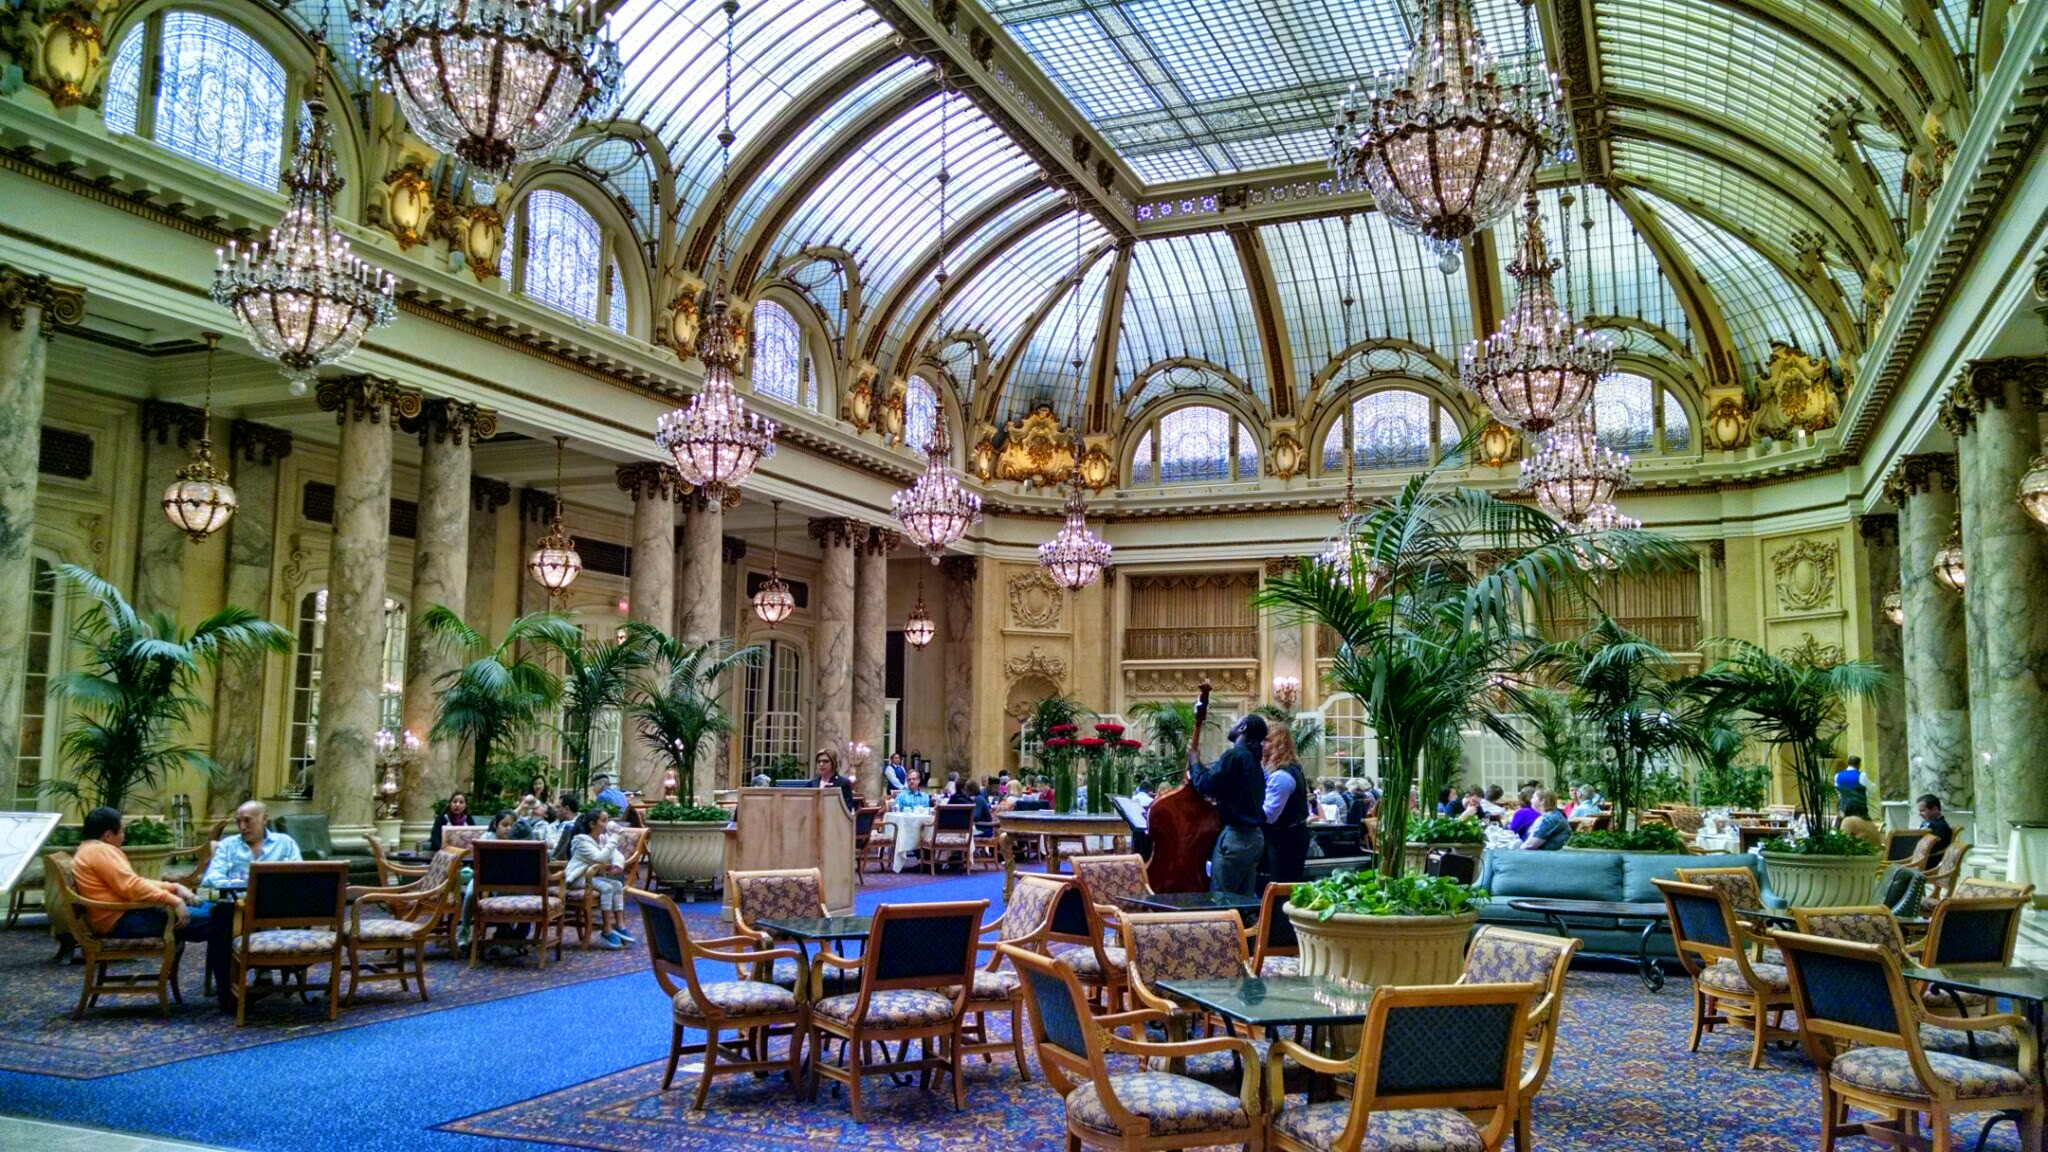 The Palace Hotel's garden court.